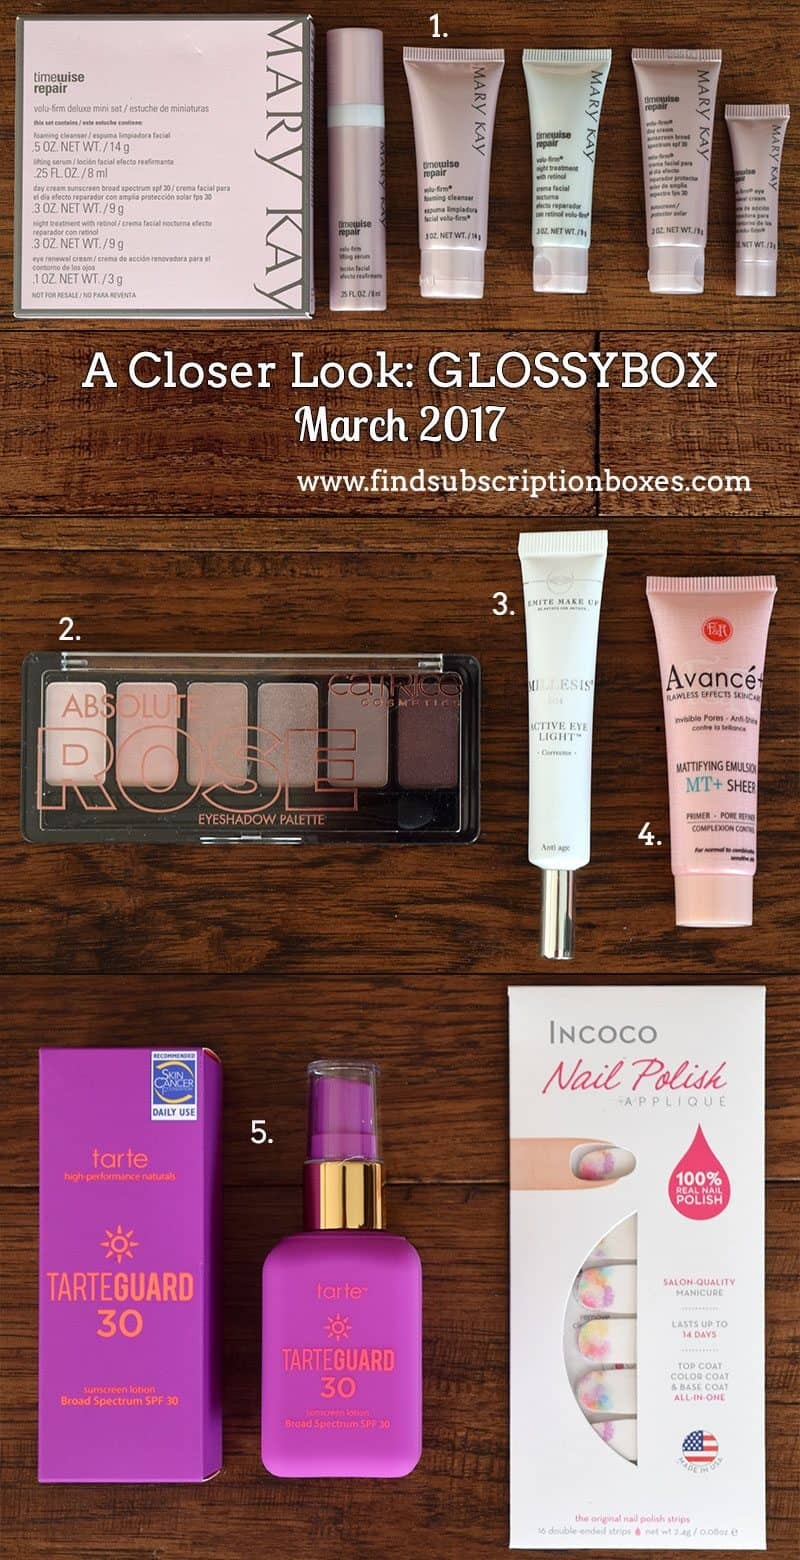 March 2017 GLOSSYBOX Review - Inside the Box